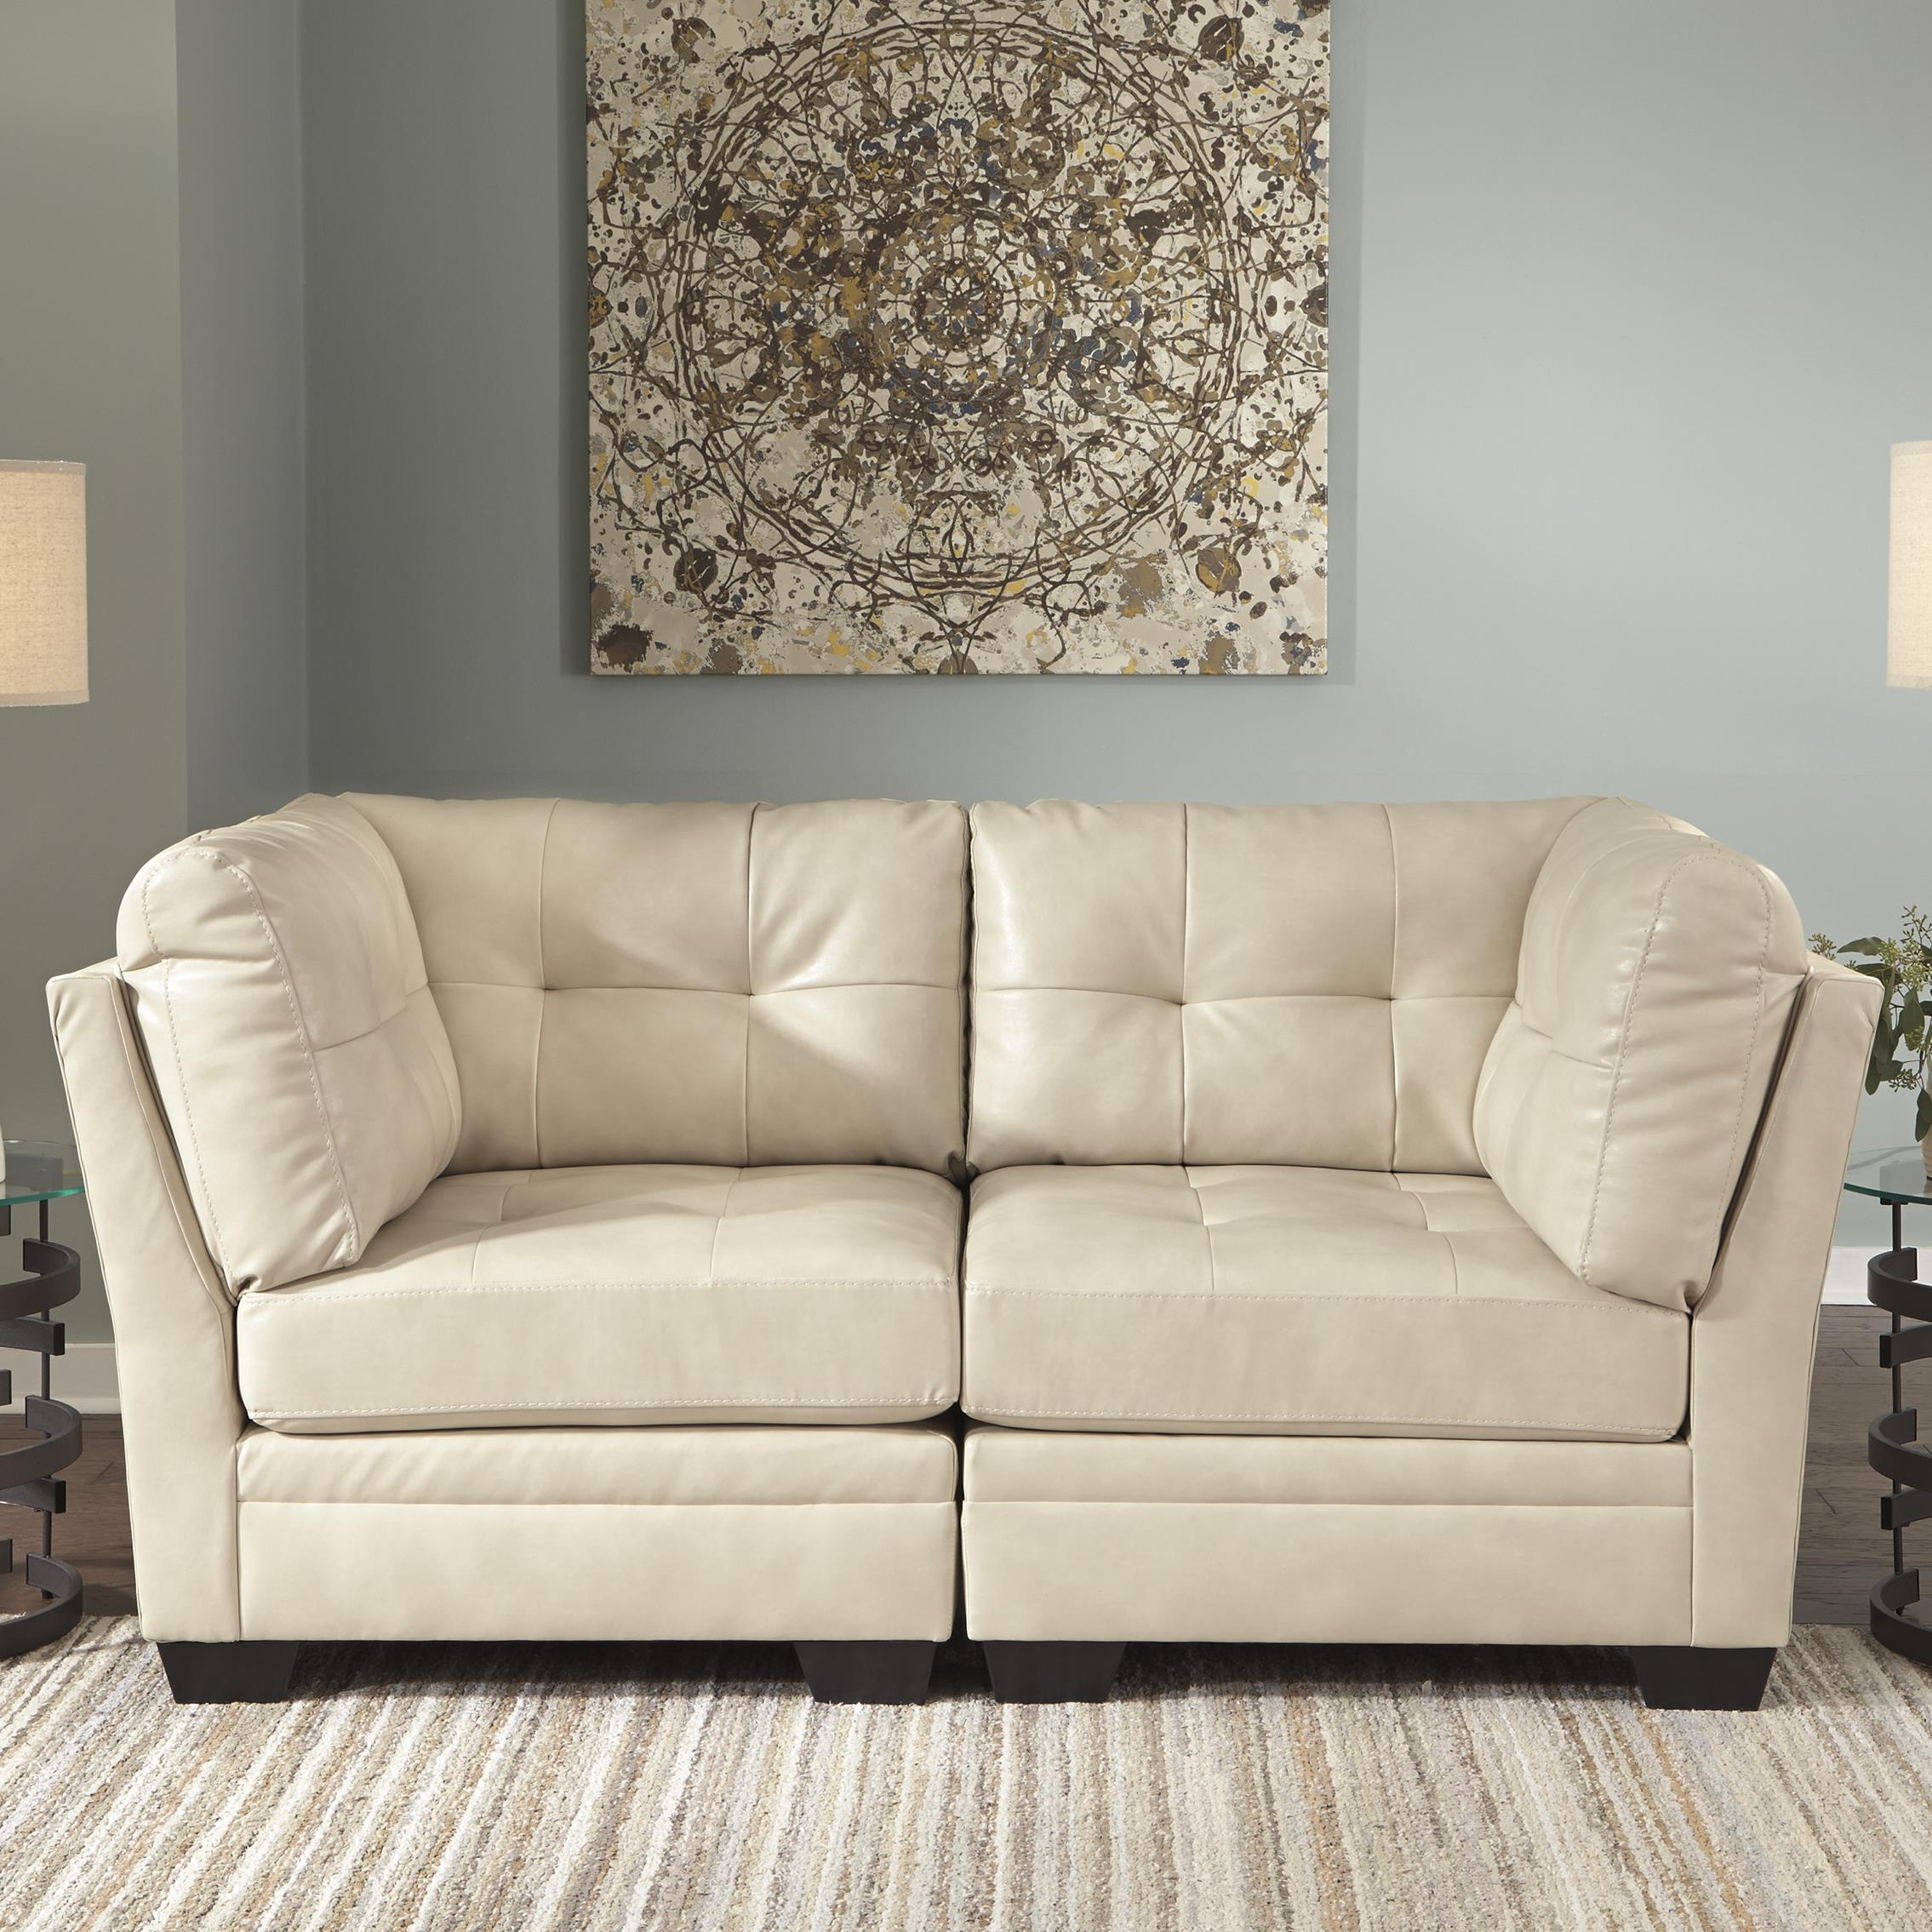 Signature Design by Ashley Khalil DuraBlend® Modular Loveseat - Item Number: 6180451x2